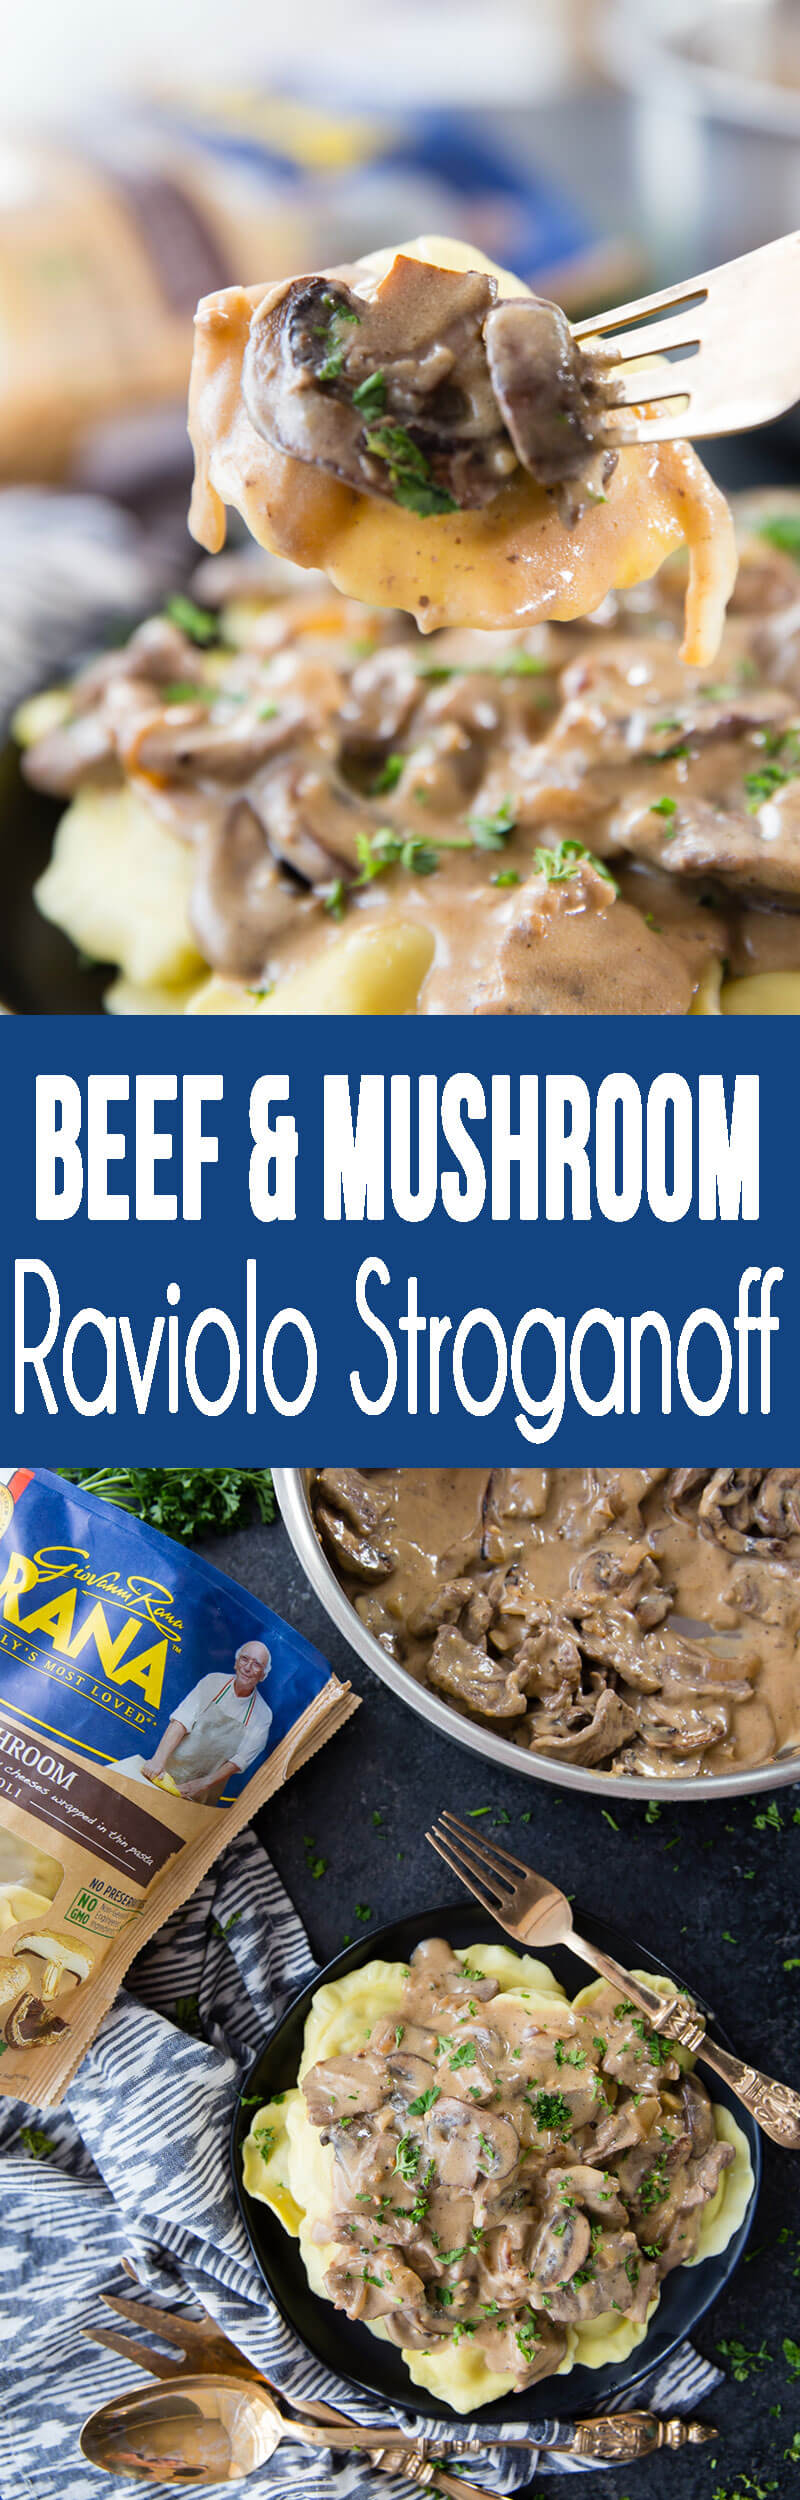 Beef and Mushroom Ravioli Stroganoff with delicious sauce